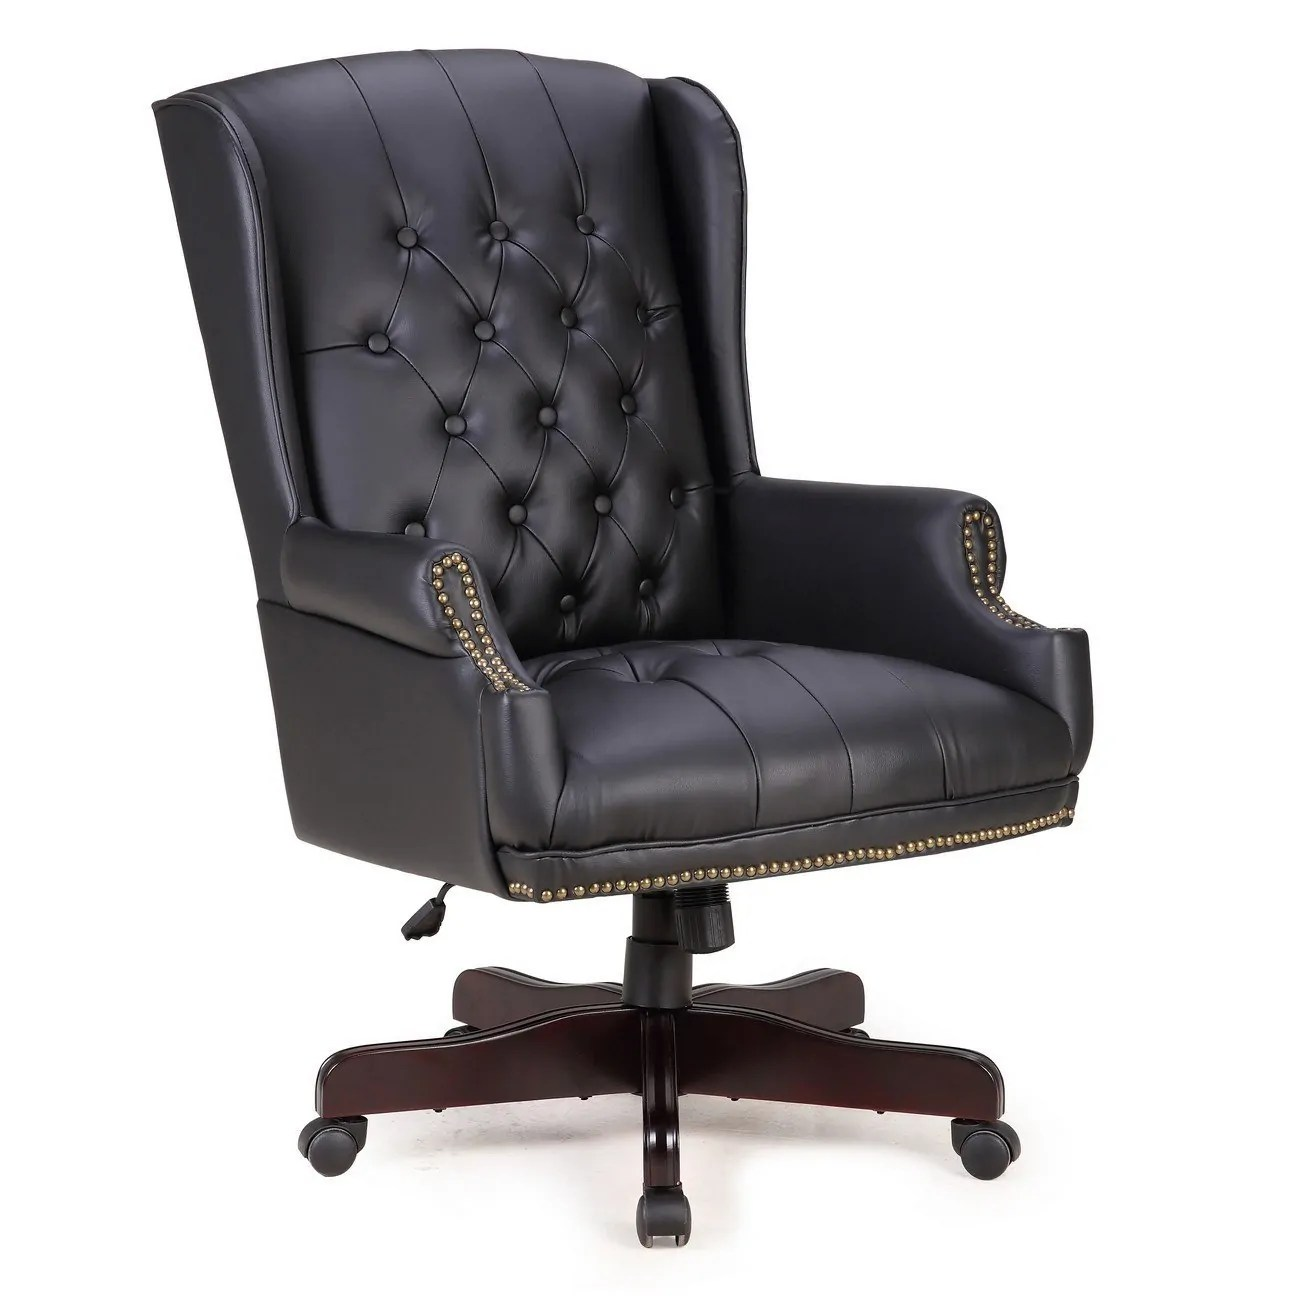 Cheap But Comfortable Office Chair most comfortable